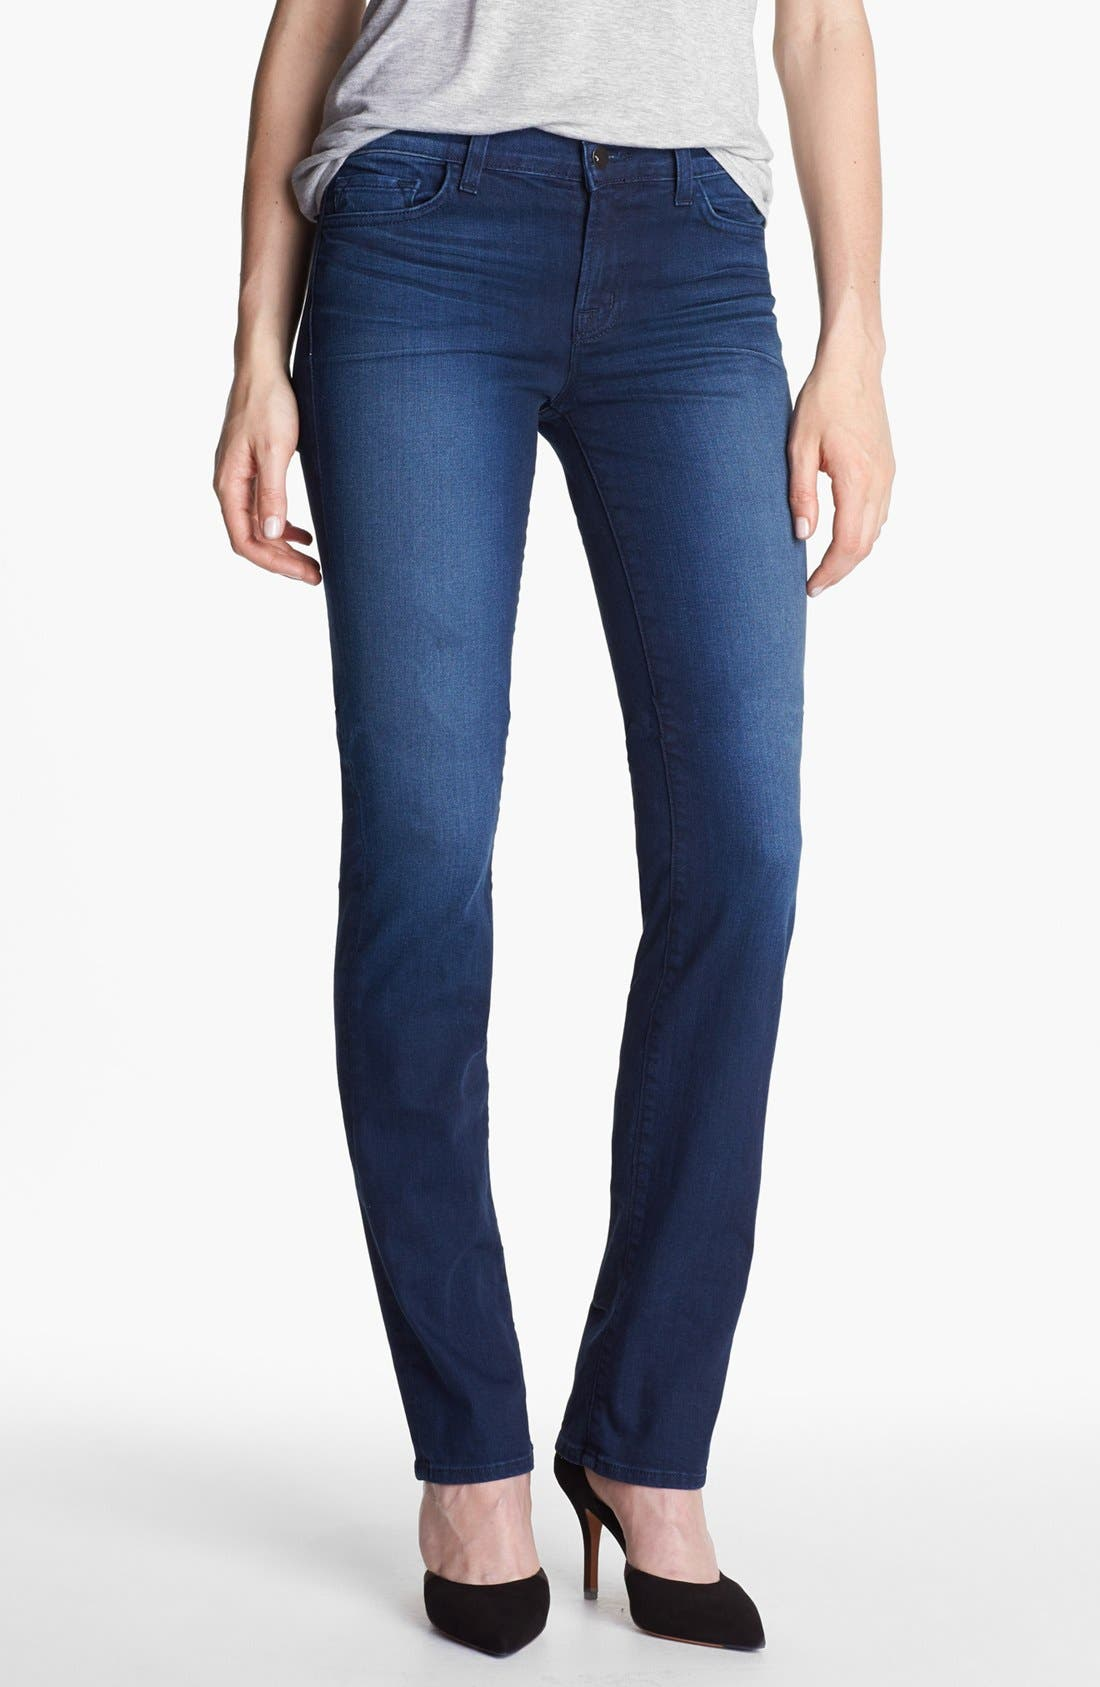 Alternate Image 1 Selected - J Brand '814' Mid-Rise Cigarette Leg Jeans (Avalon)